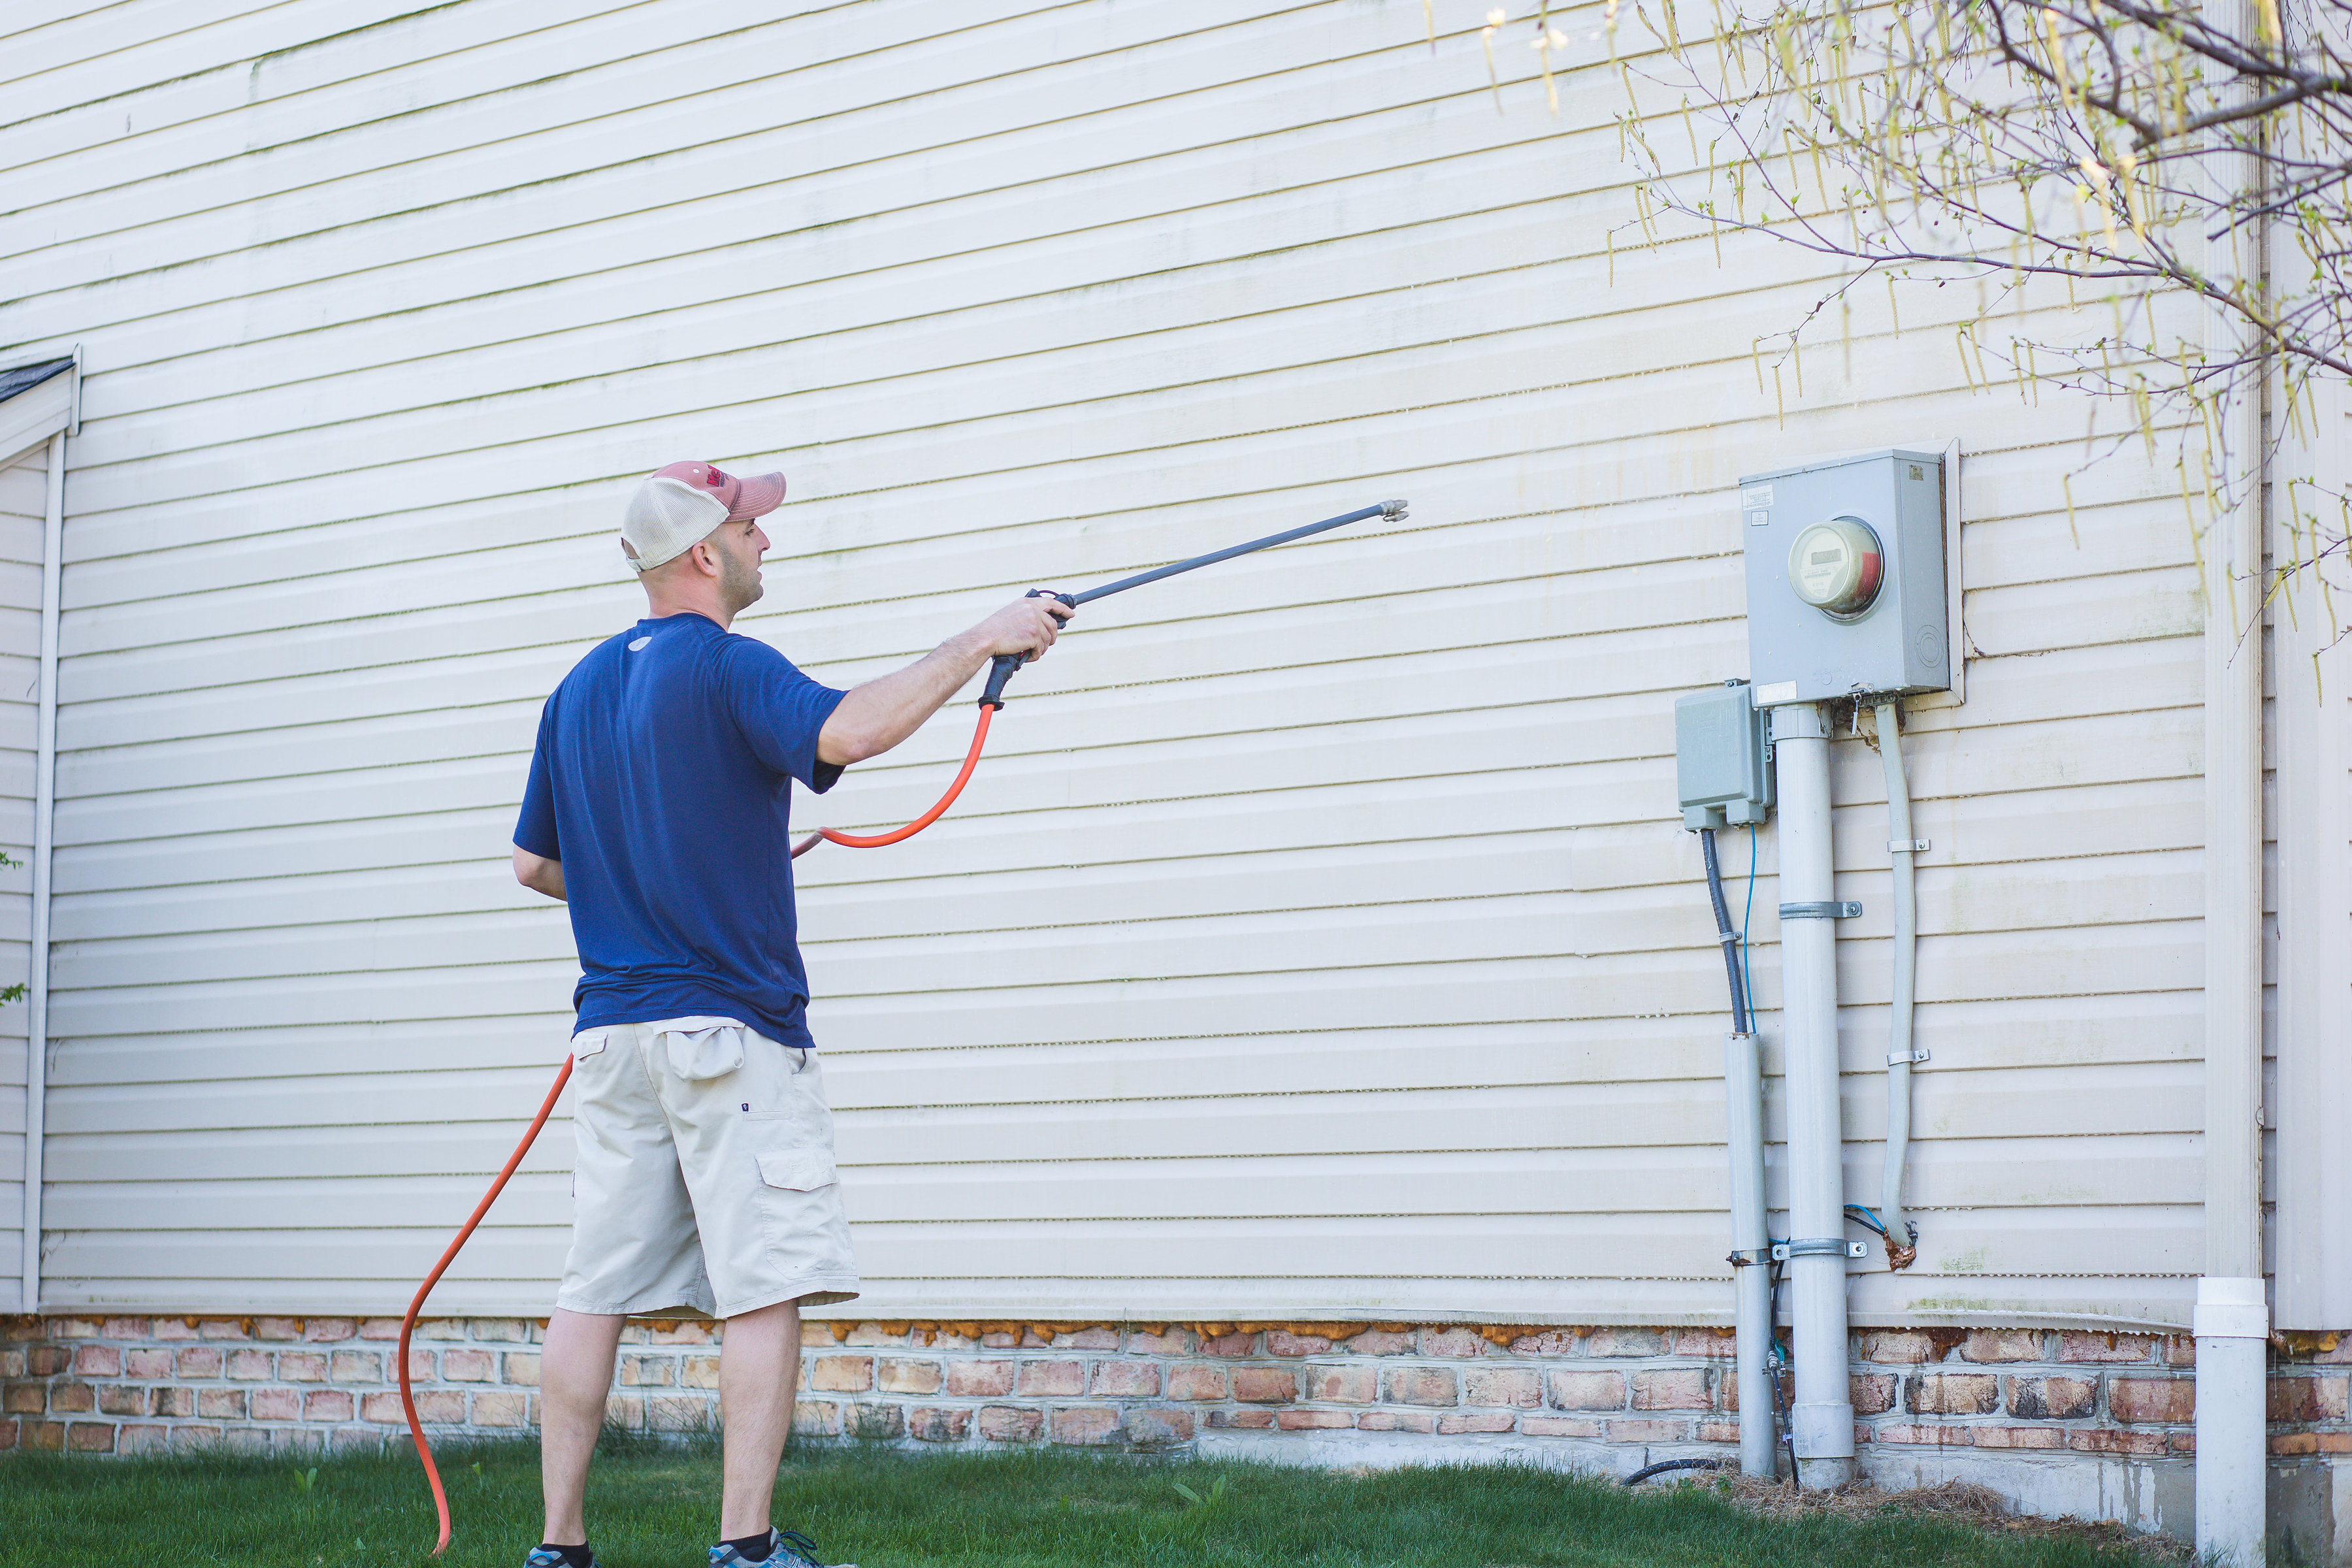 Pressure Washer | Pressure Washing Service in Greencastle PA